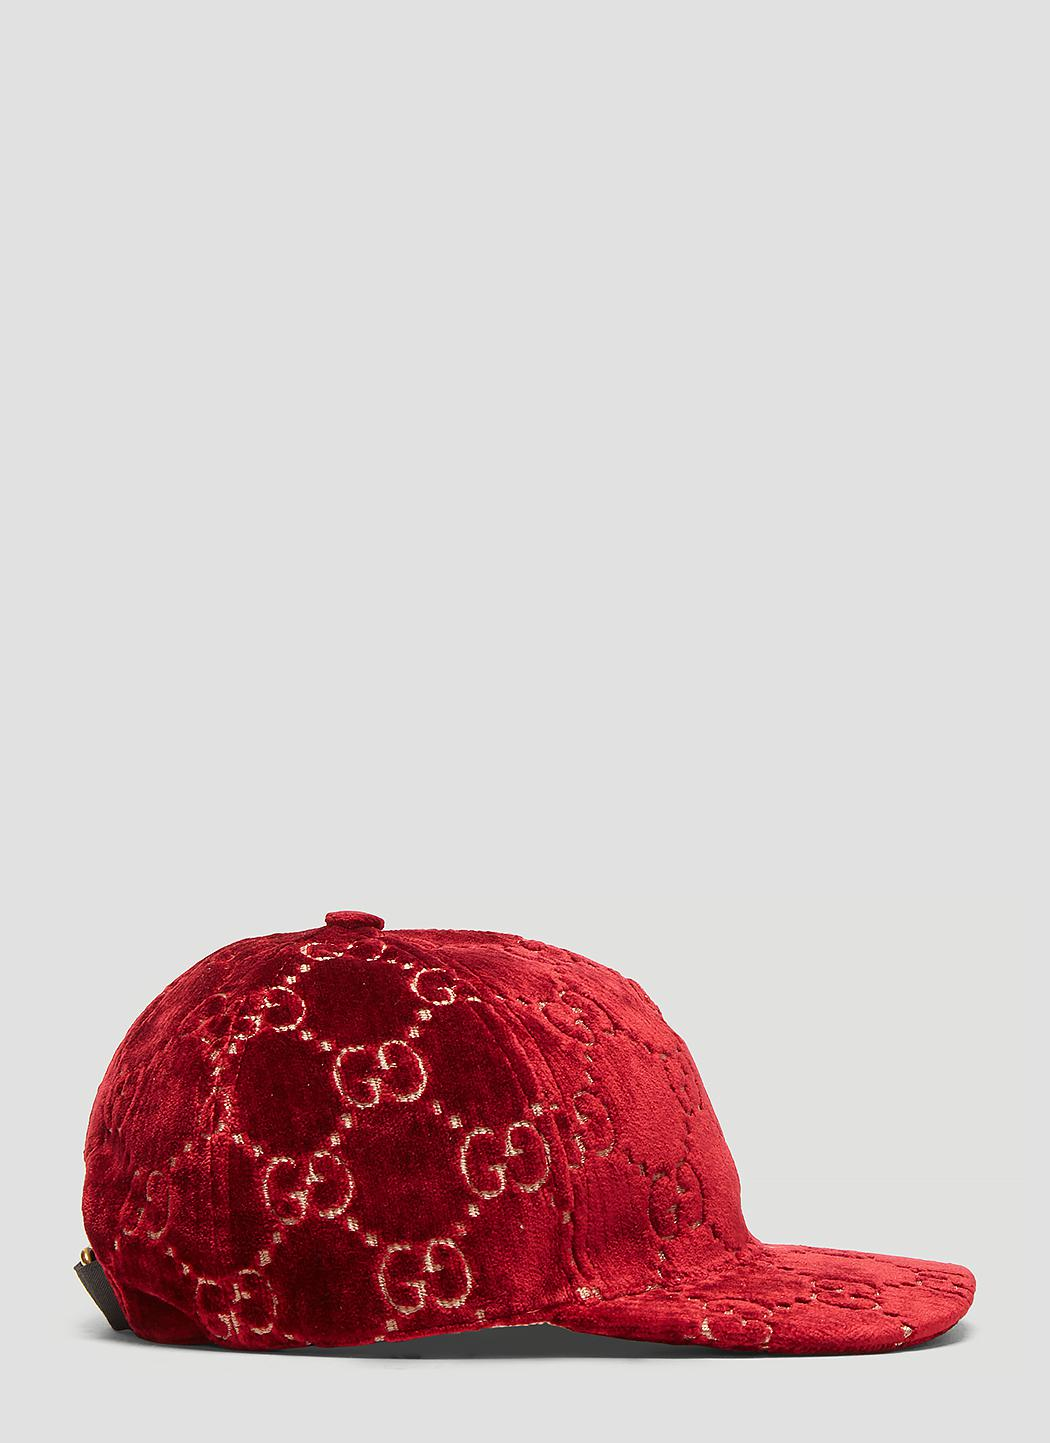 616259268ec Gucci Logo Embroidered Velvet Baseball Cap - in Red - Save 26% - Lyst